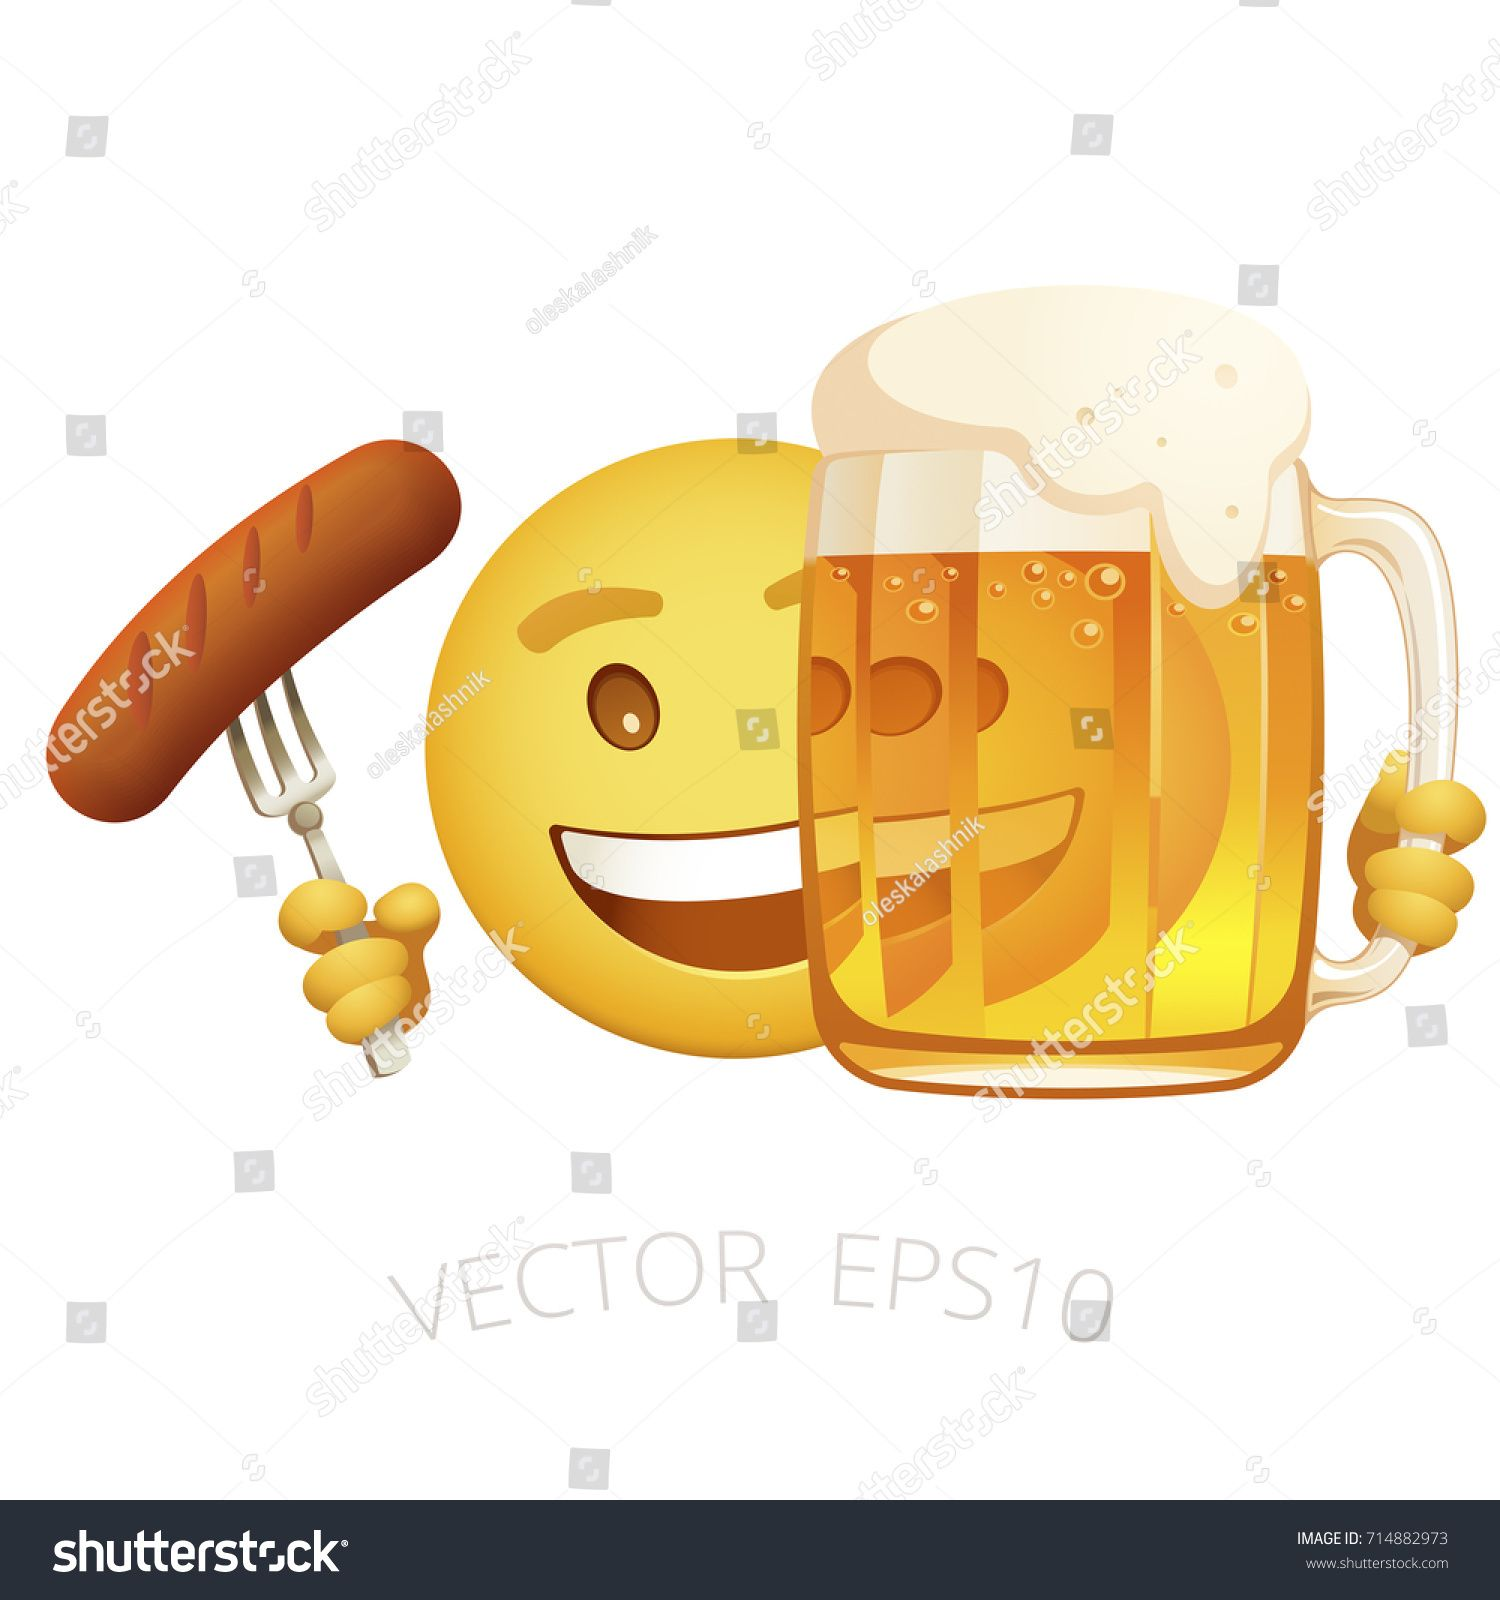 Vector Yellow Smiley Holds A Tasty Grilled Sausage On A Fork And Hides Behind The Mug Of Beer Cheerful Emoticon Look Out Fr Smiley Grilled Sausage Oktoberfest